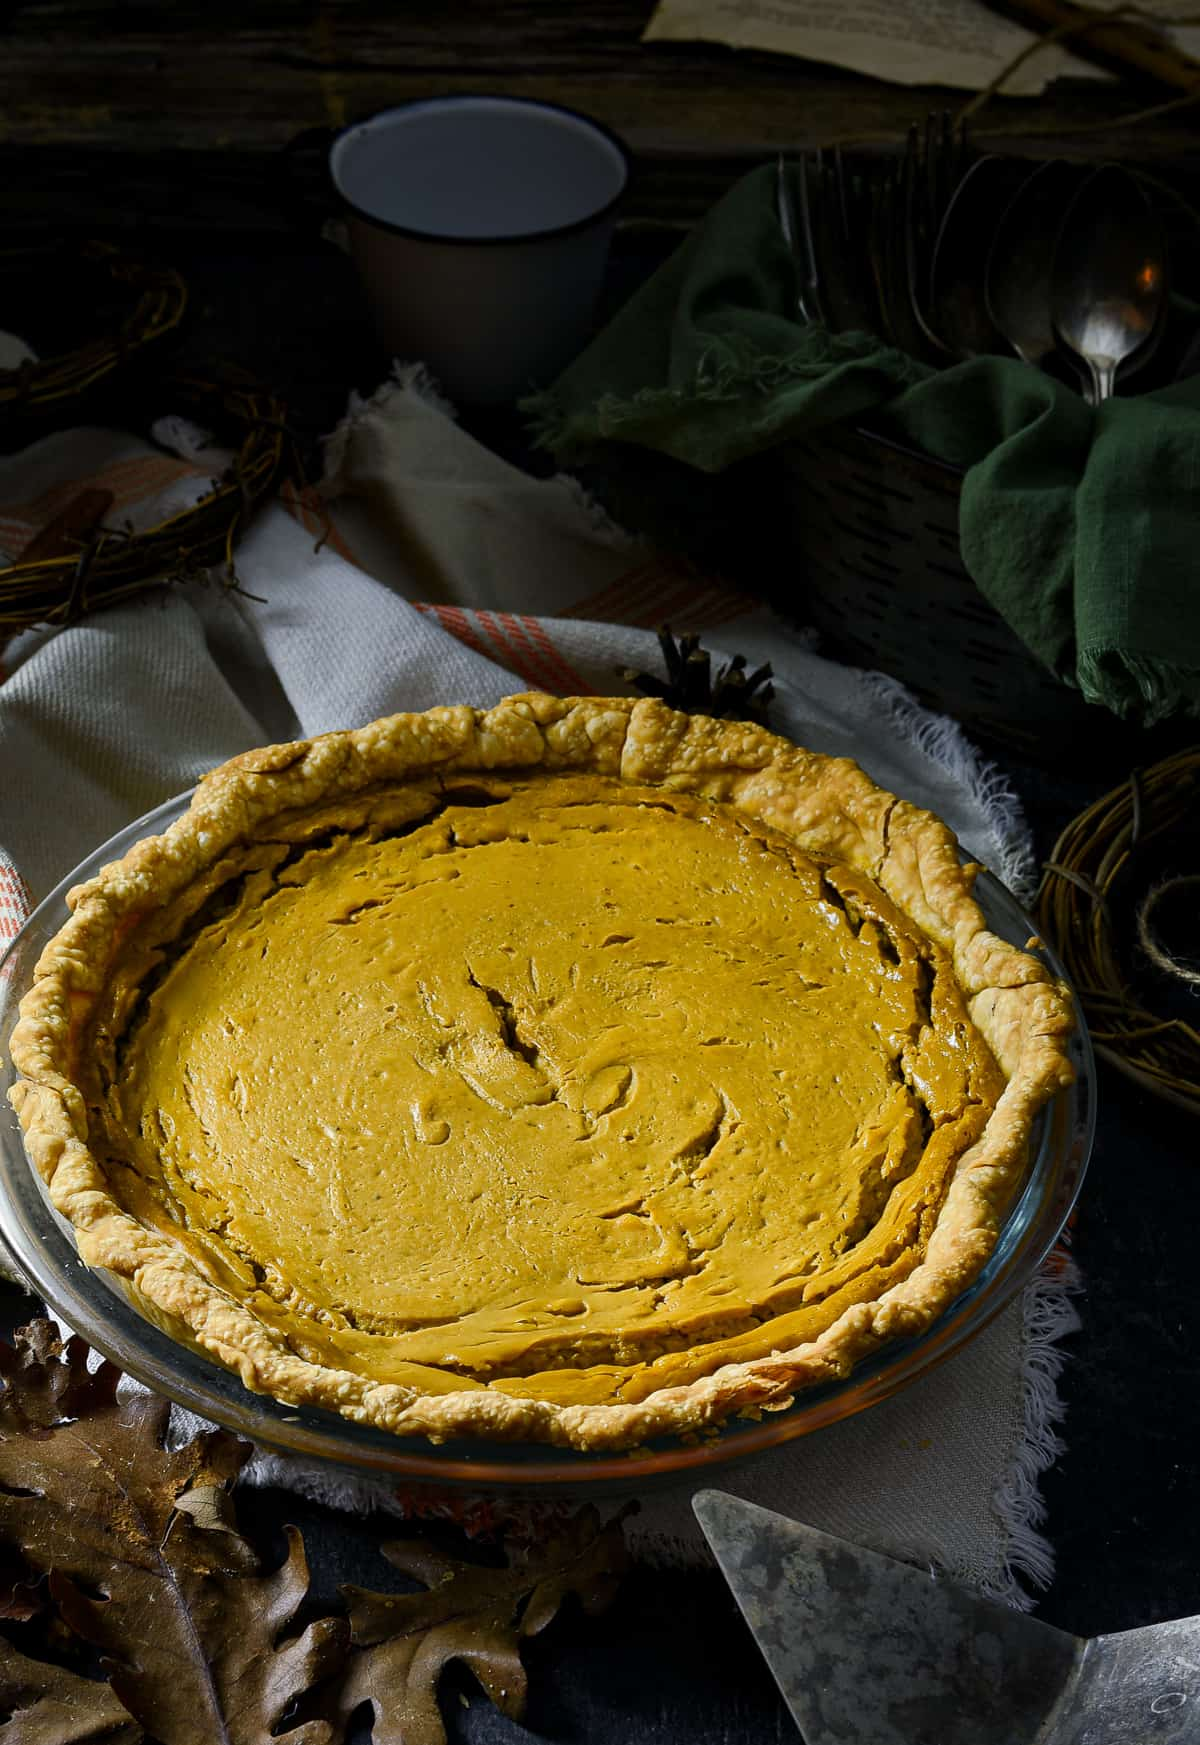 Vegan sweet potato pie in glass pie dish.